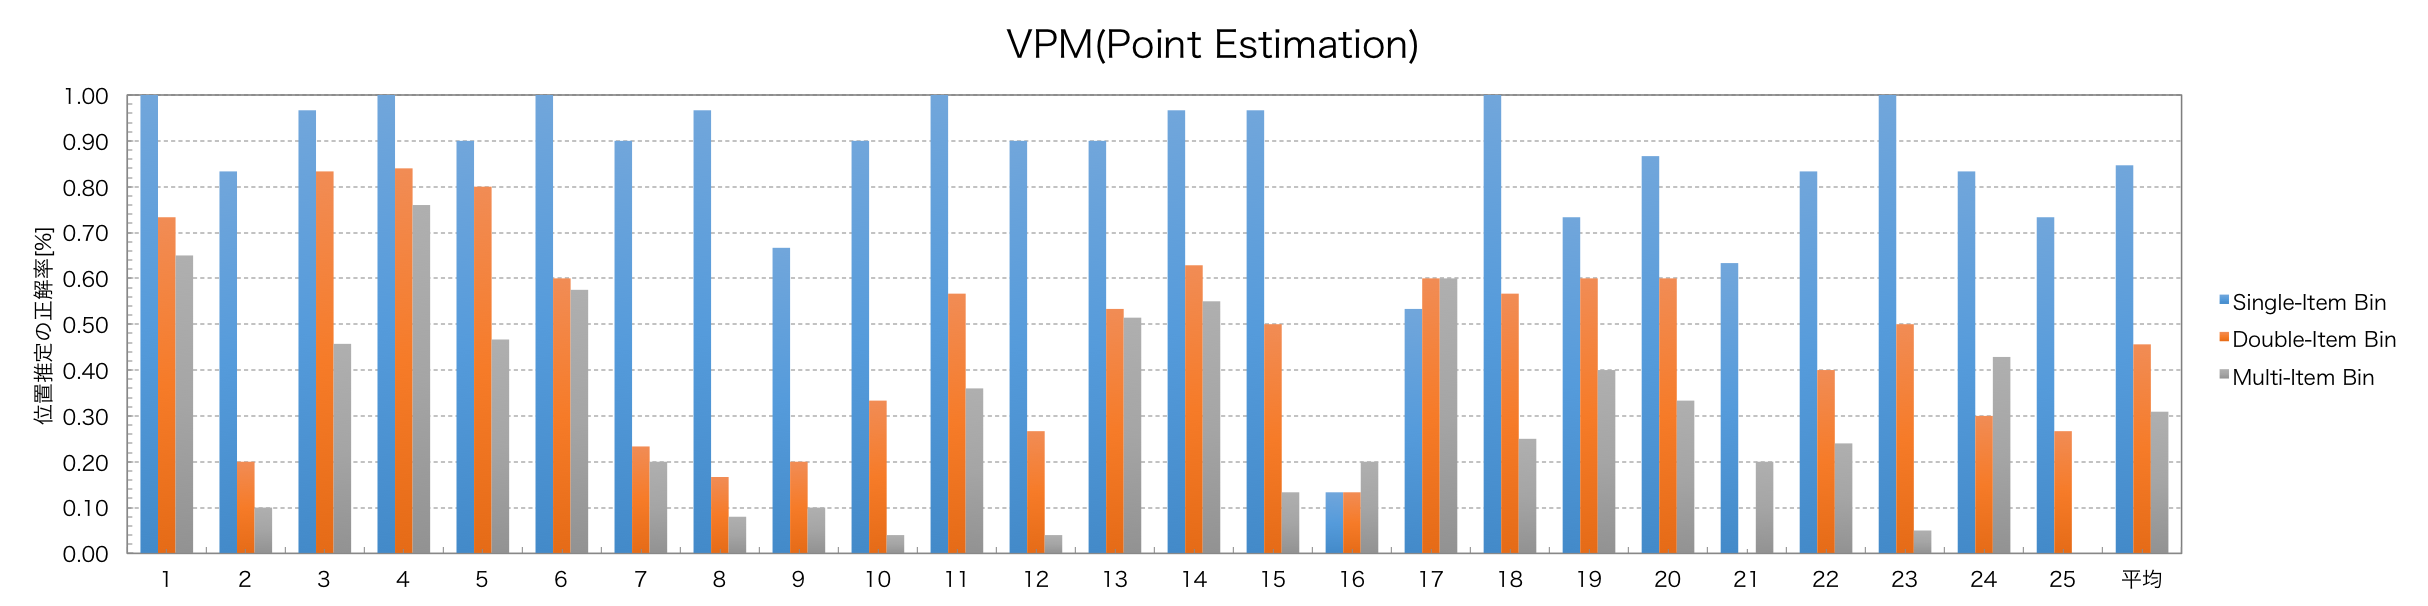 VPM_point